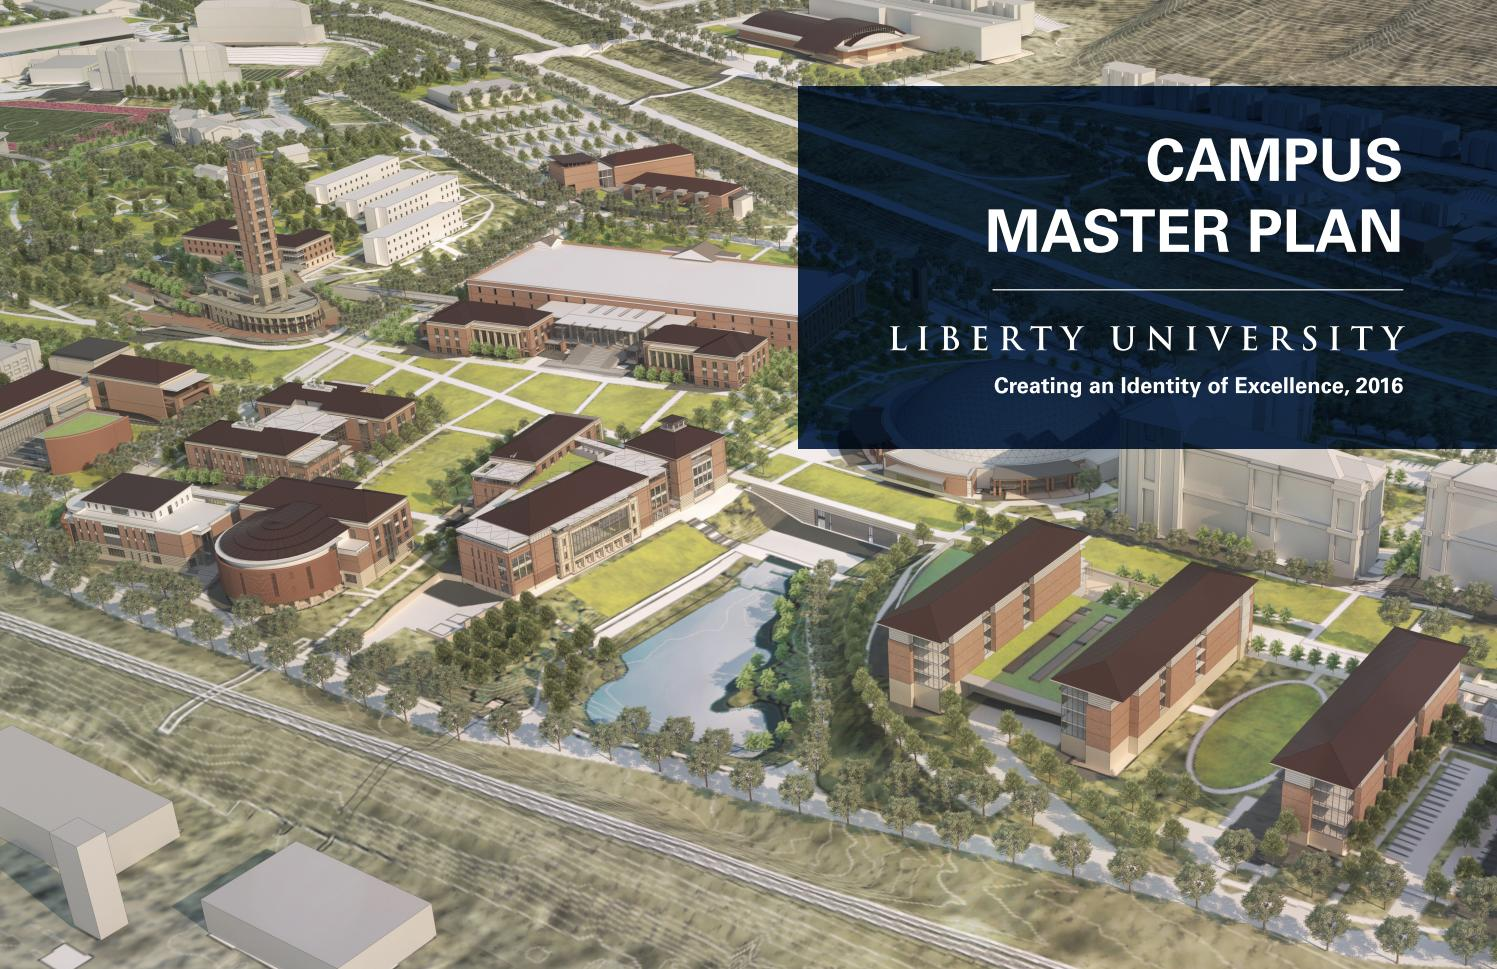 Liberty University Campus Master Plan by VMDO Architects - issuu on